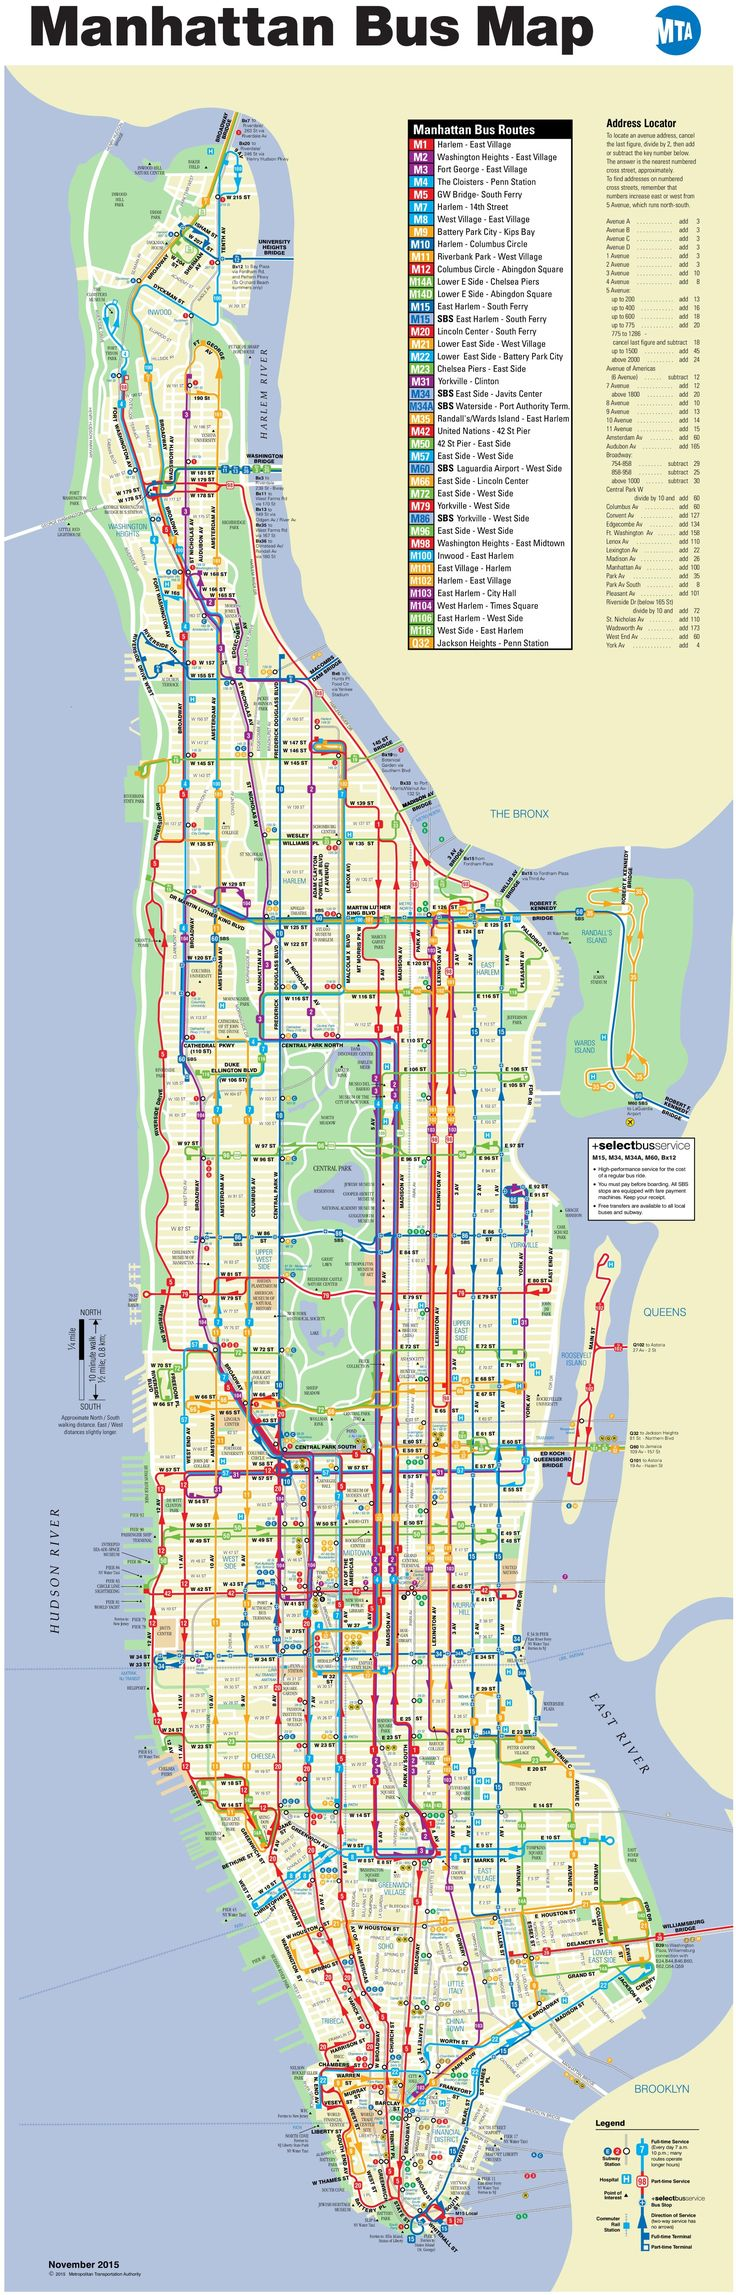 Best Bus Map Ideas On Pinterest Map Of Underground Map Of - Brooklyn bus map